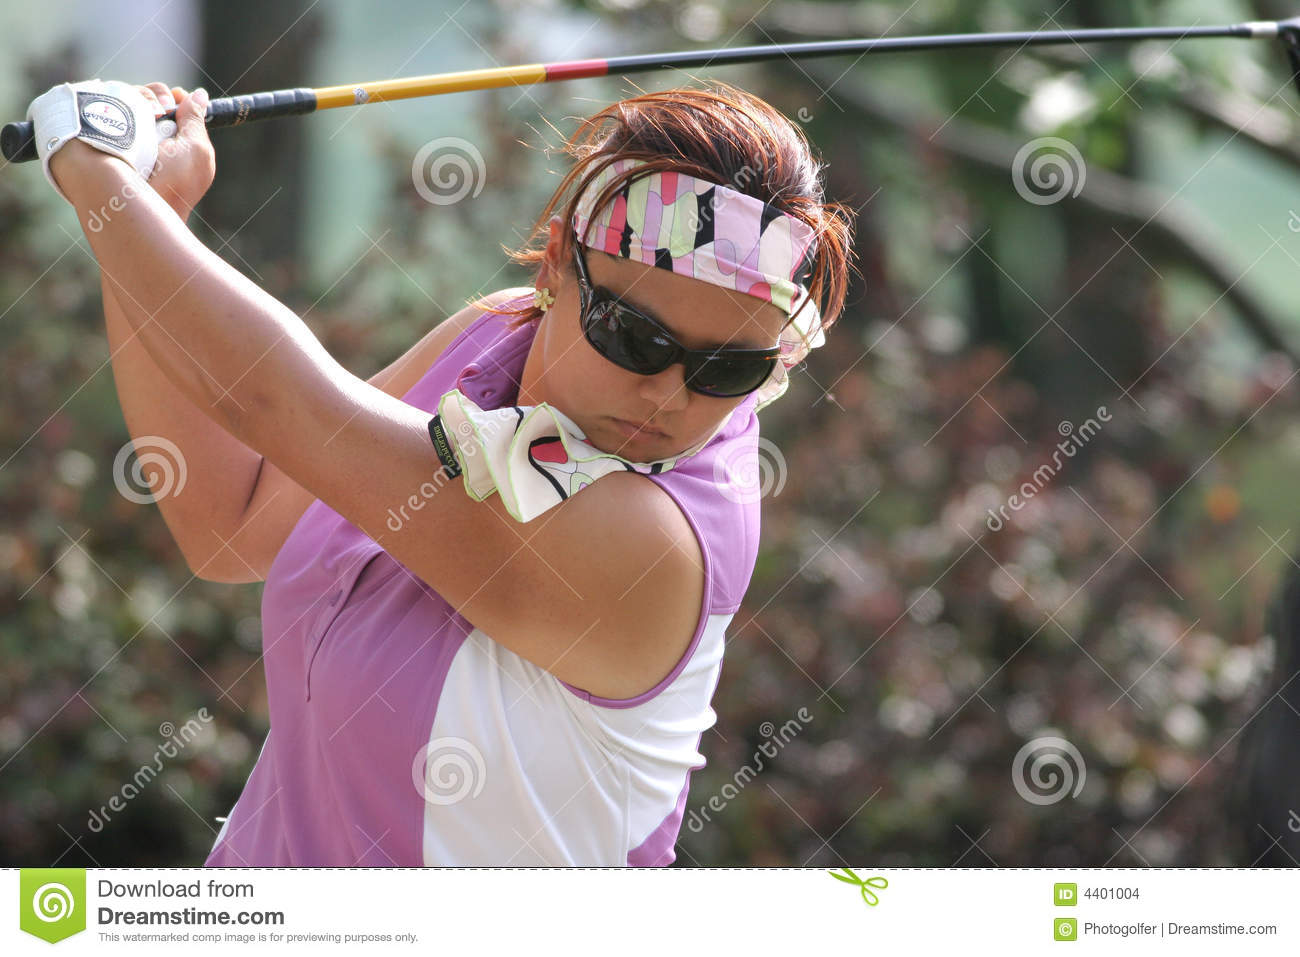 Turnerar den christina golfkim lpgaen 2006 stockbridge